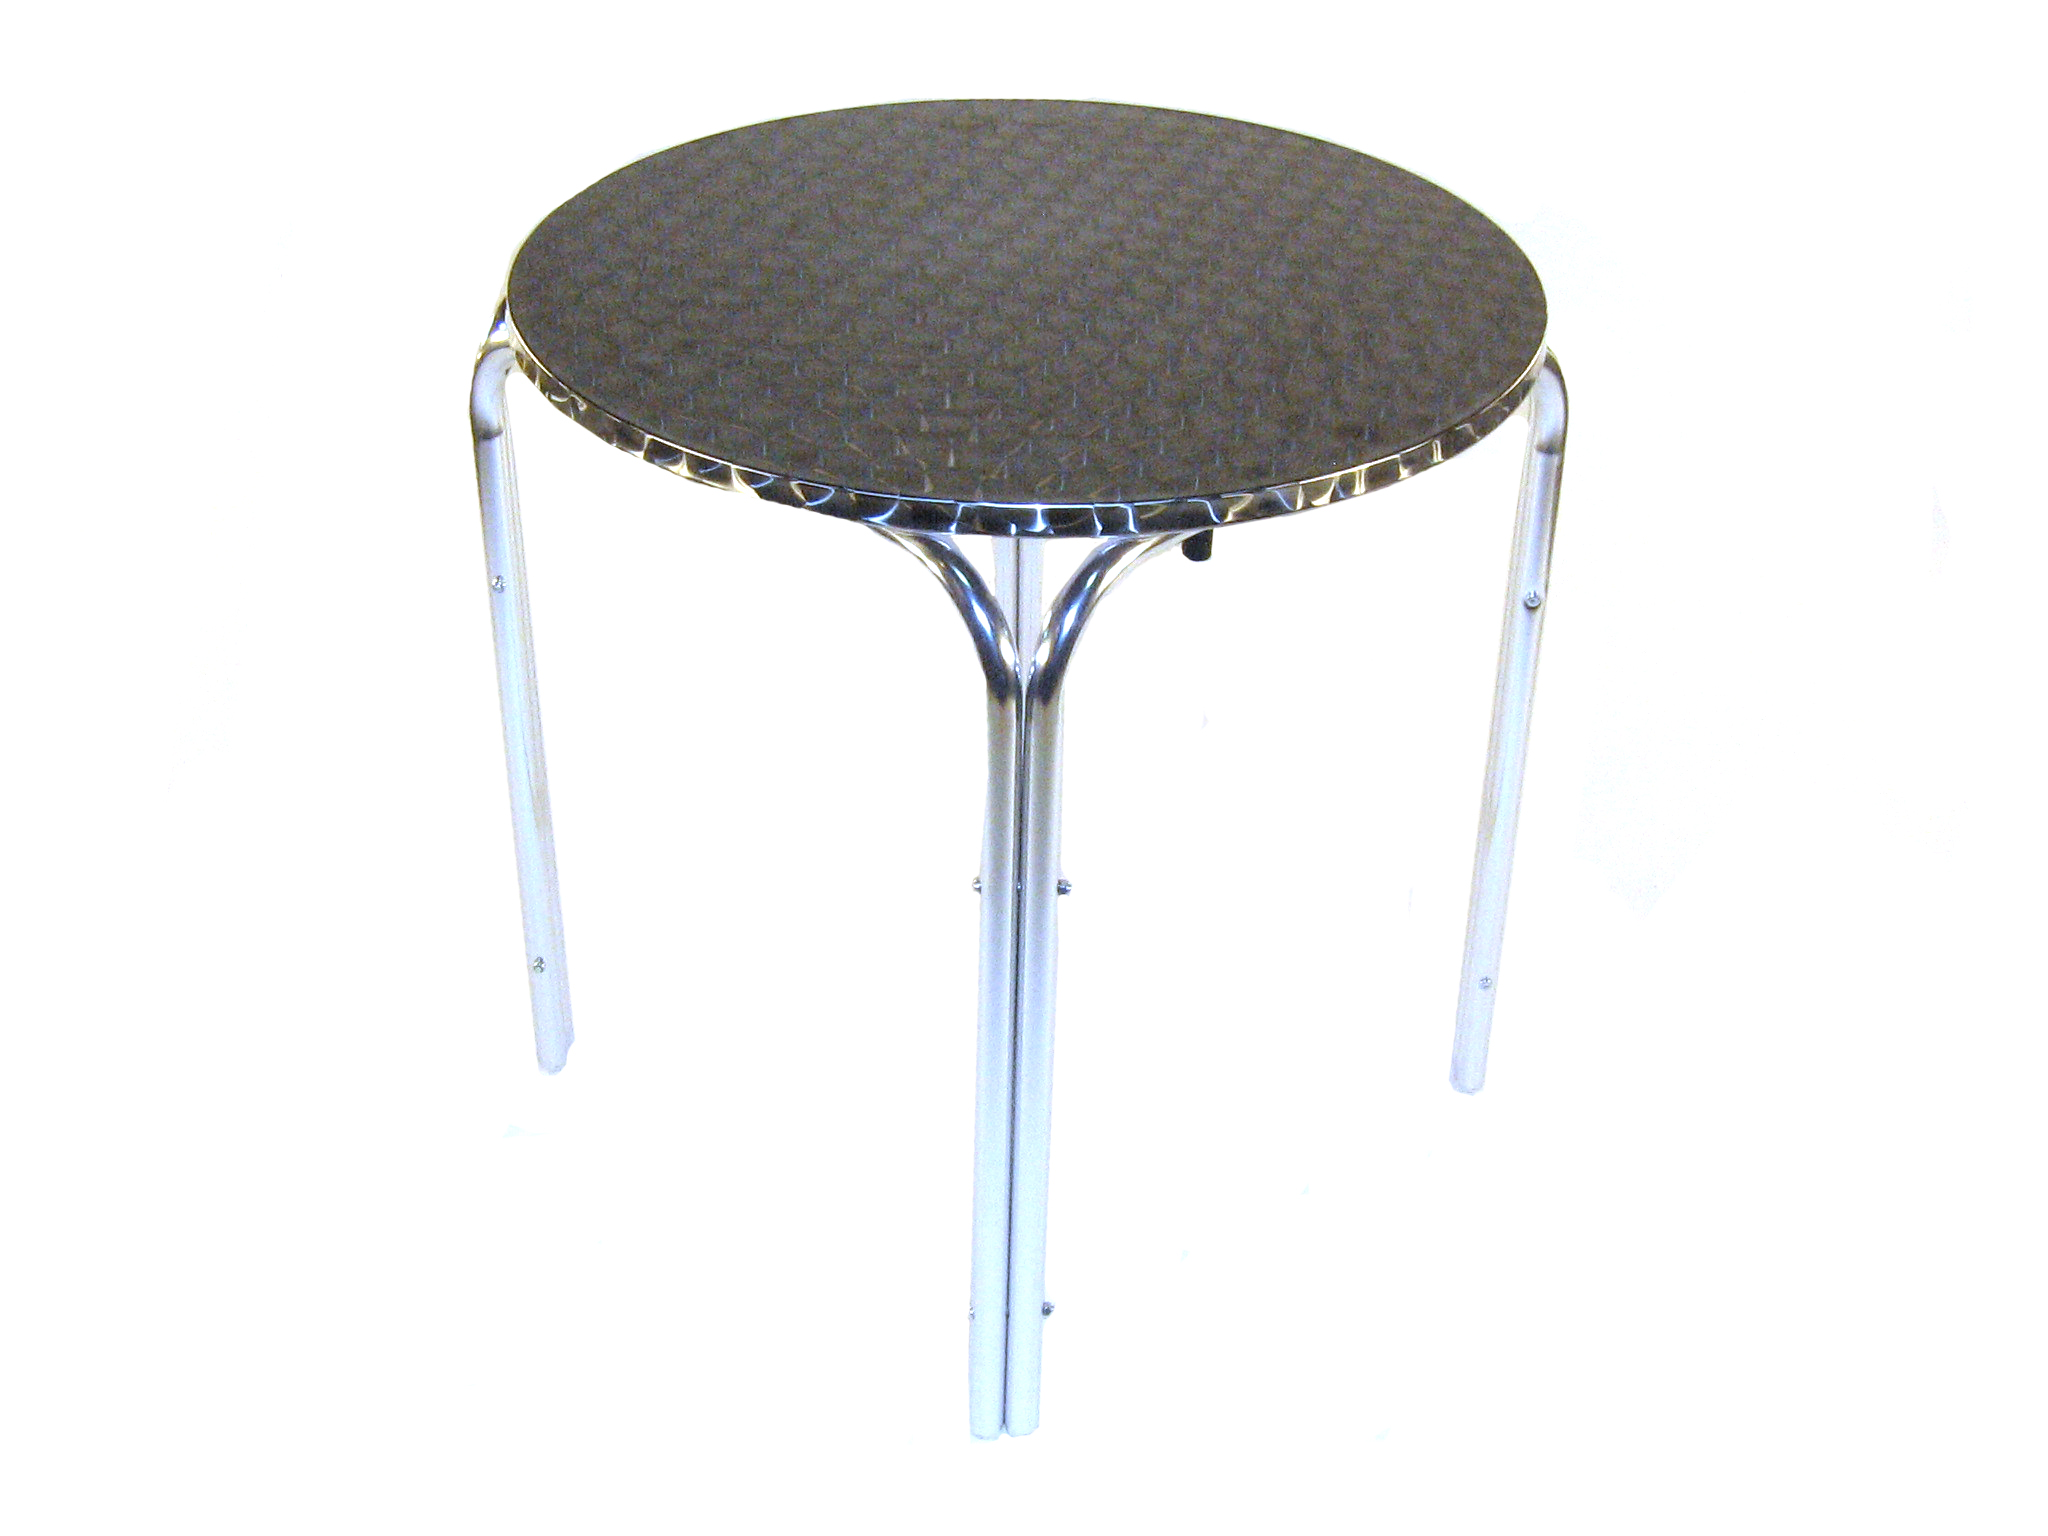 80cm fully weatherproof aluminium table with a rolled edge - BE Event Hire